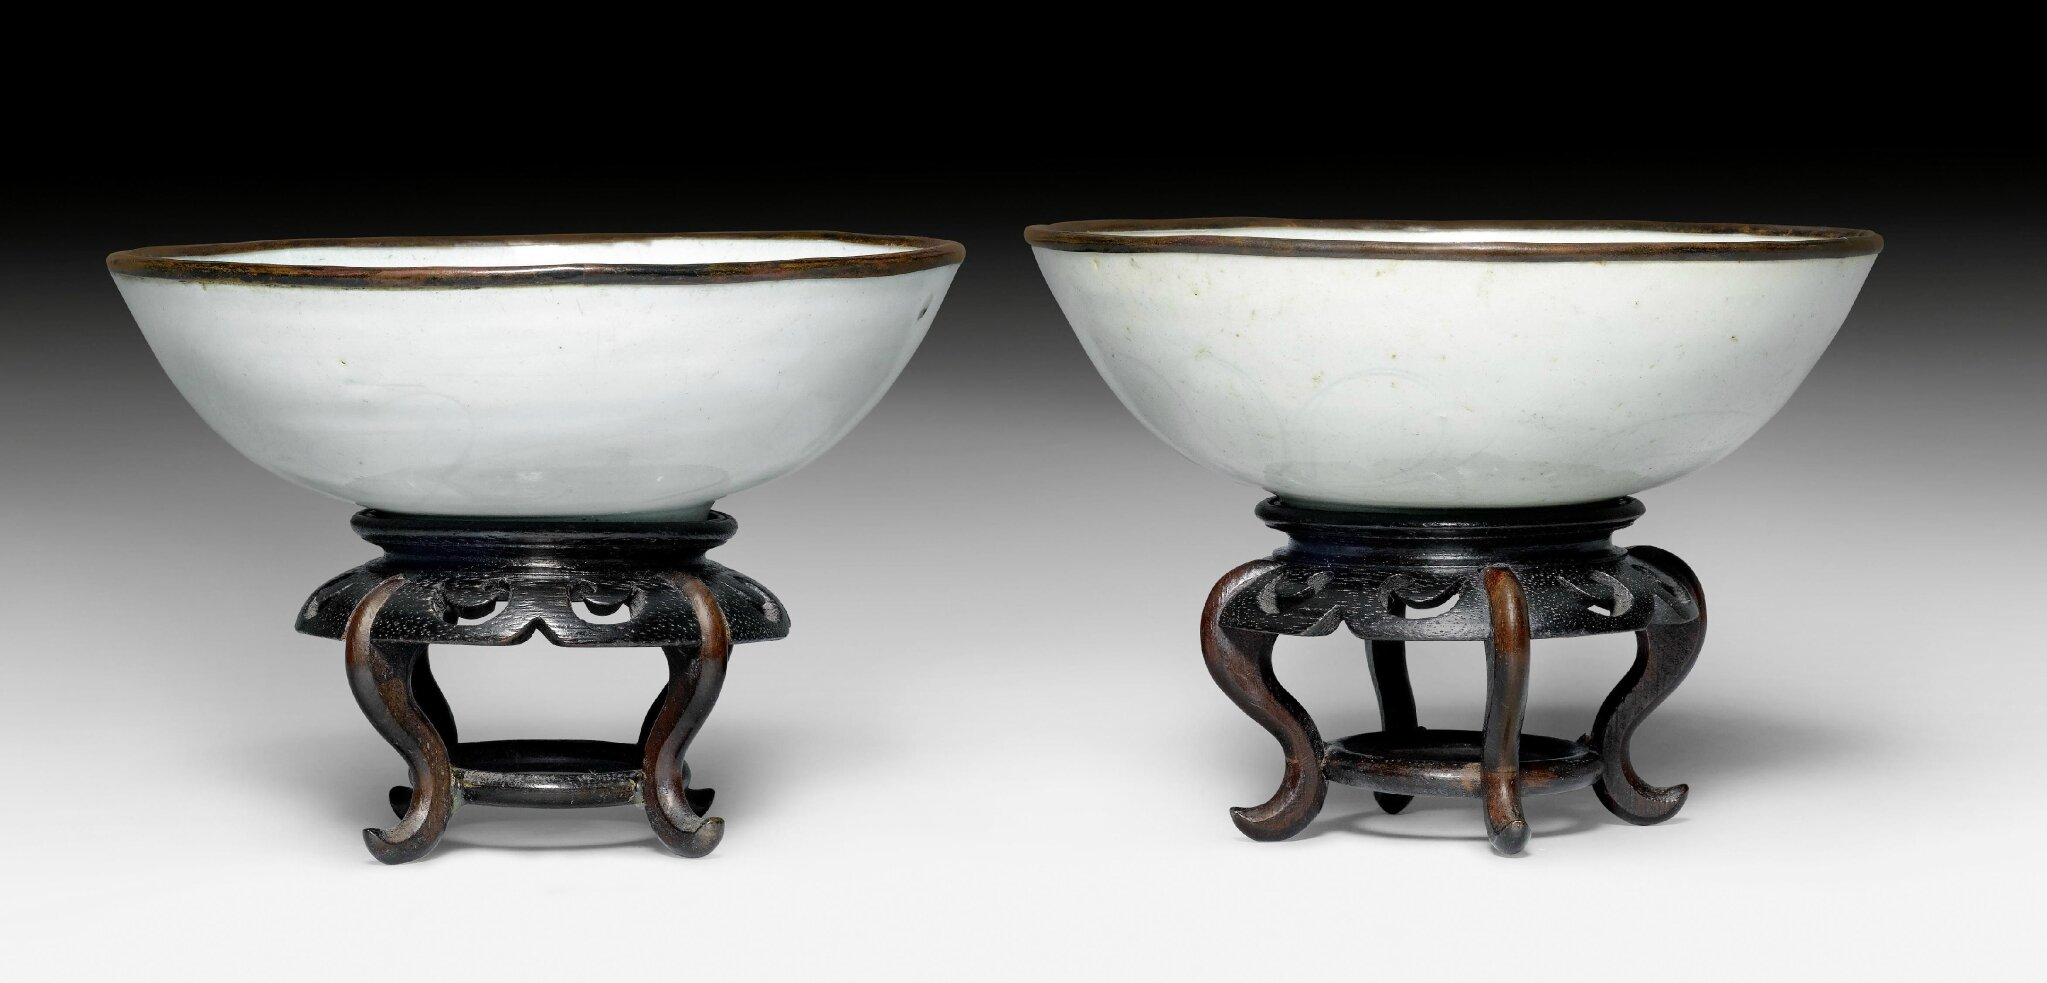 A pair of Qingbai bowls incised with flowers, China, Southern Song dynasty (1127-1279)